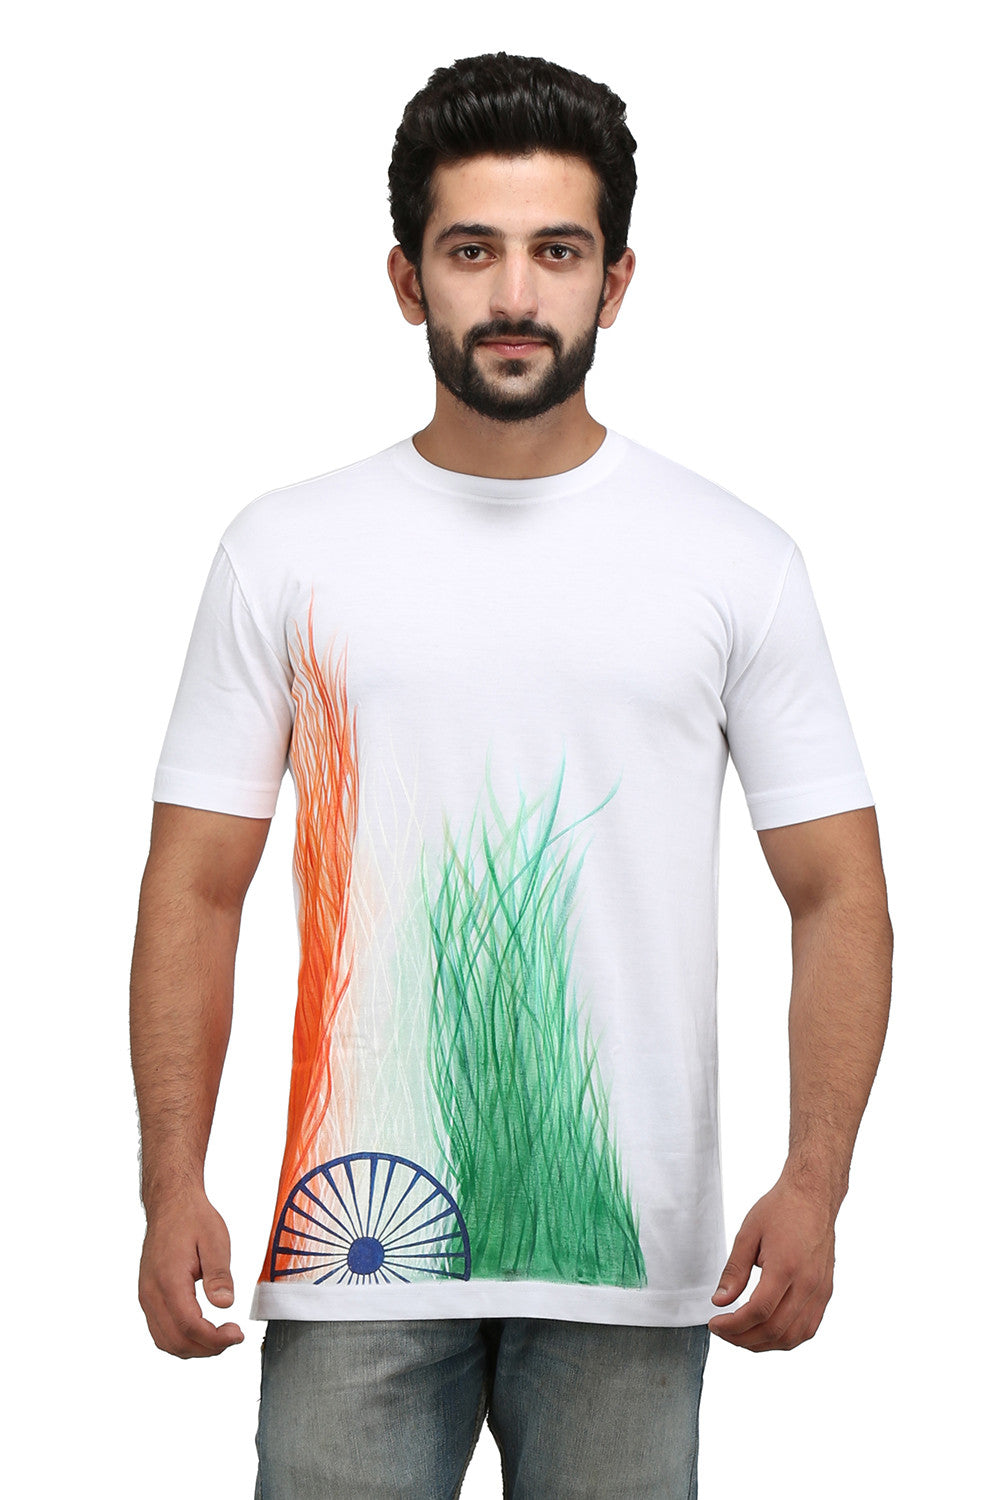 Hand-painted Waves White T-shirt - Rang Rage  - 1